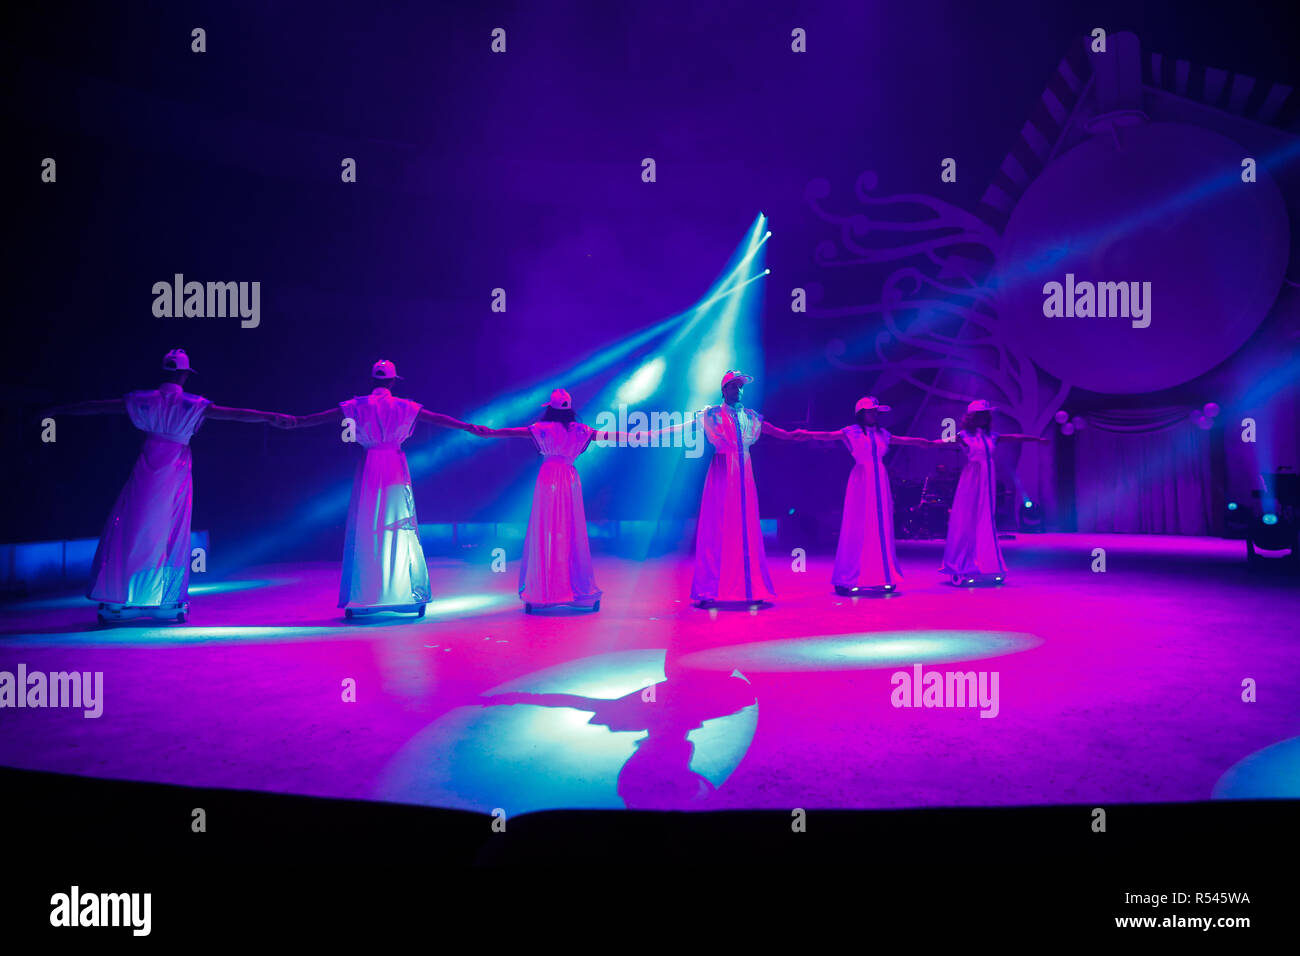 Arte Visual Stock Photos & Arte Visual Stock Images - Alamy